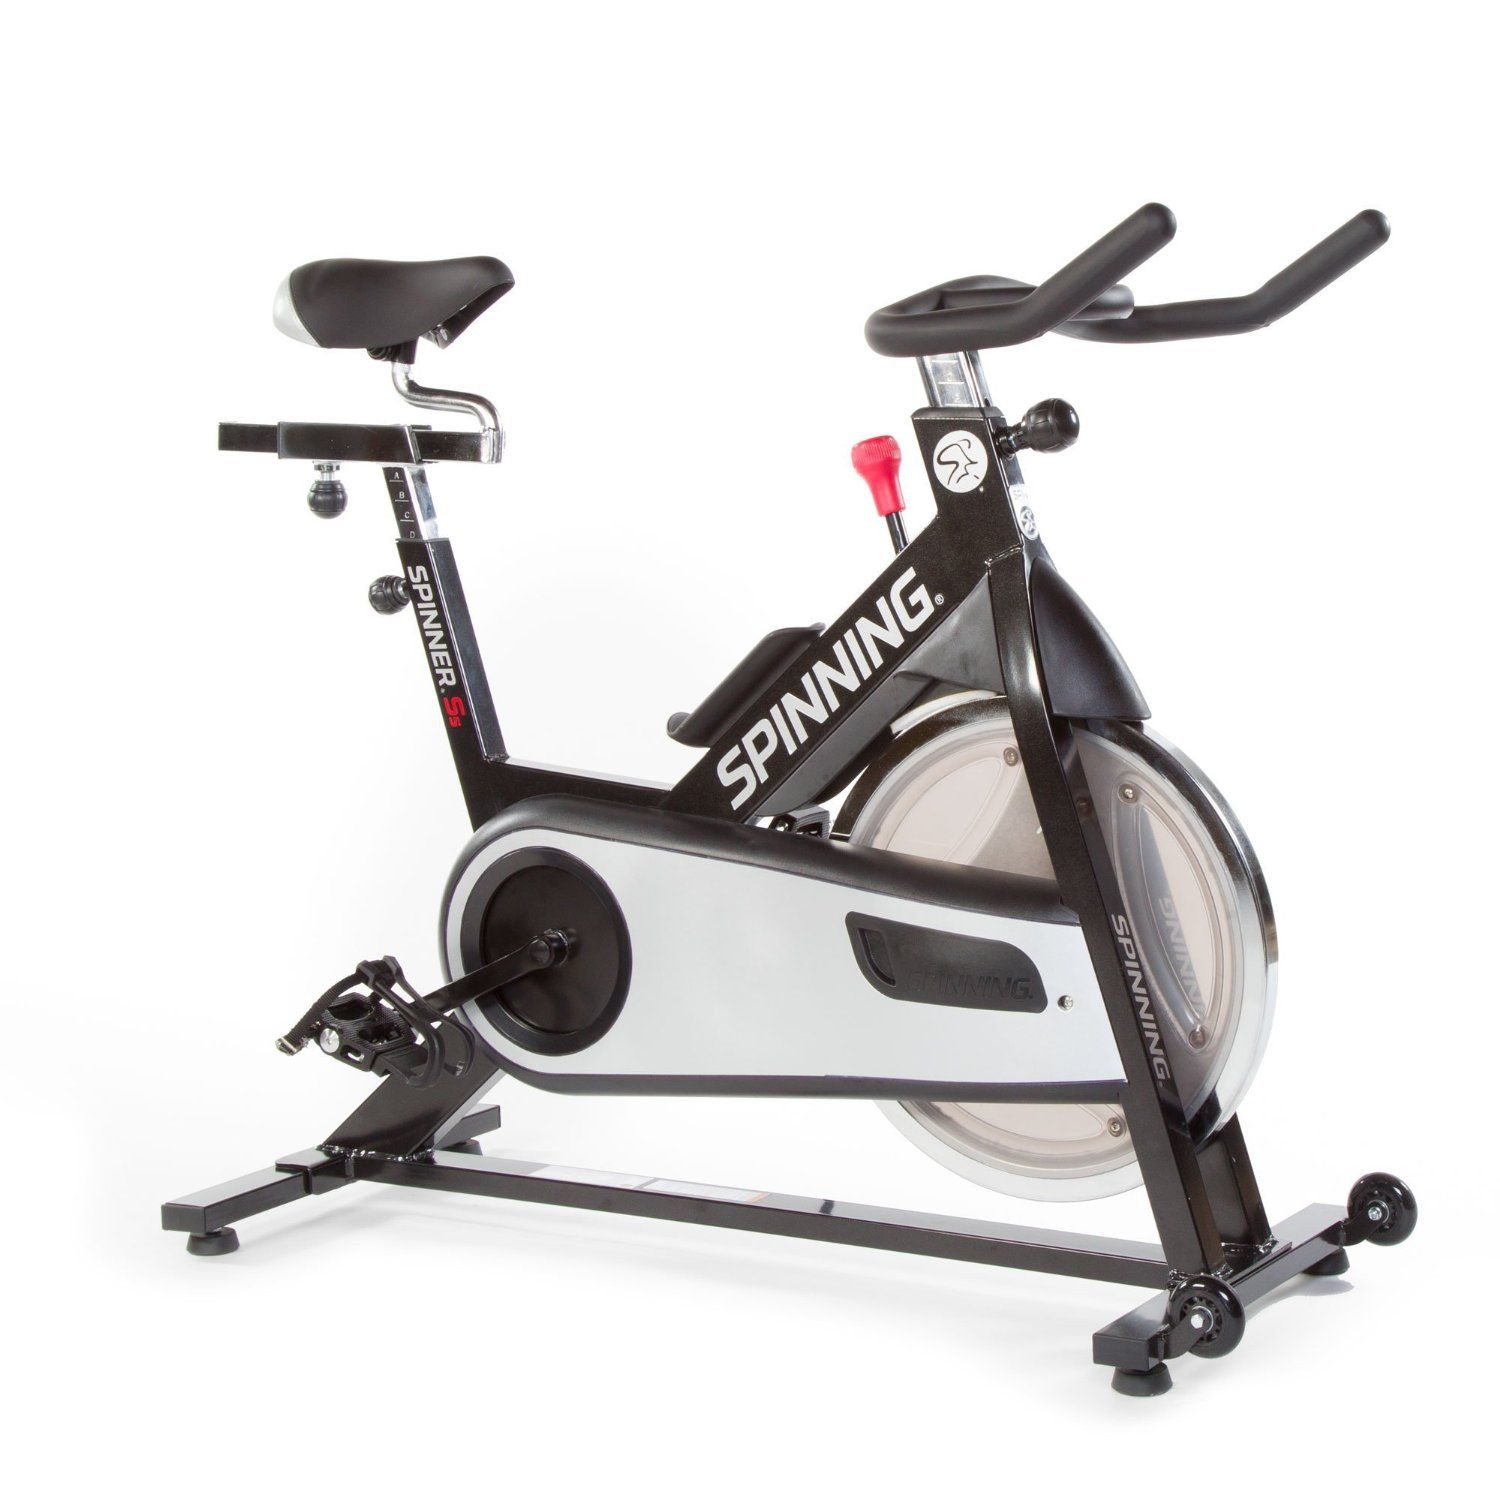 Spinner S5 Indoor Cycling Bike Review Exercise Bike Reviews Indoors Fitness Biking Workout Indoor Cycling Indoor Cycling Bike